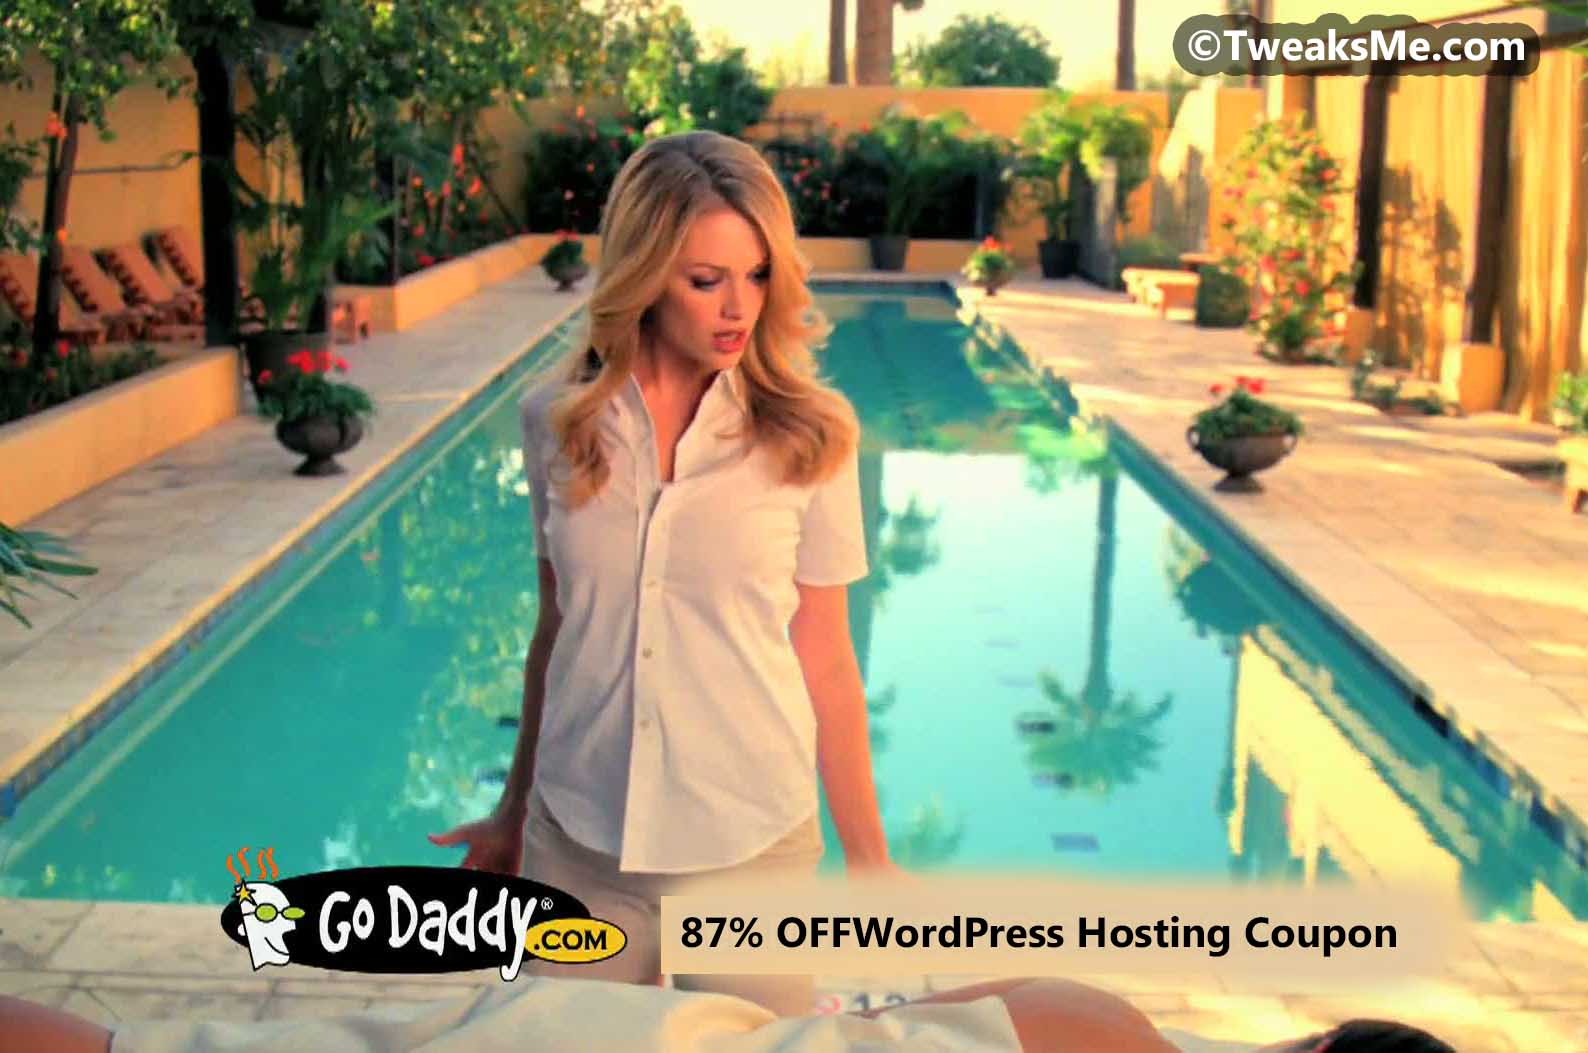 godaddy-wordpress-hosting-promo-code